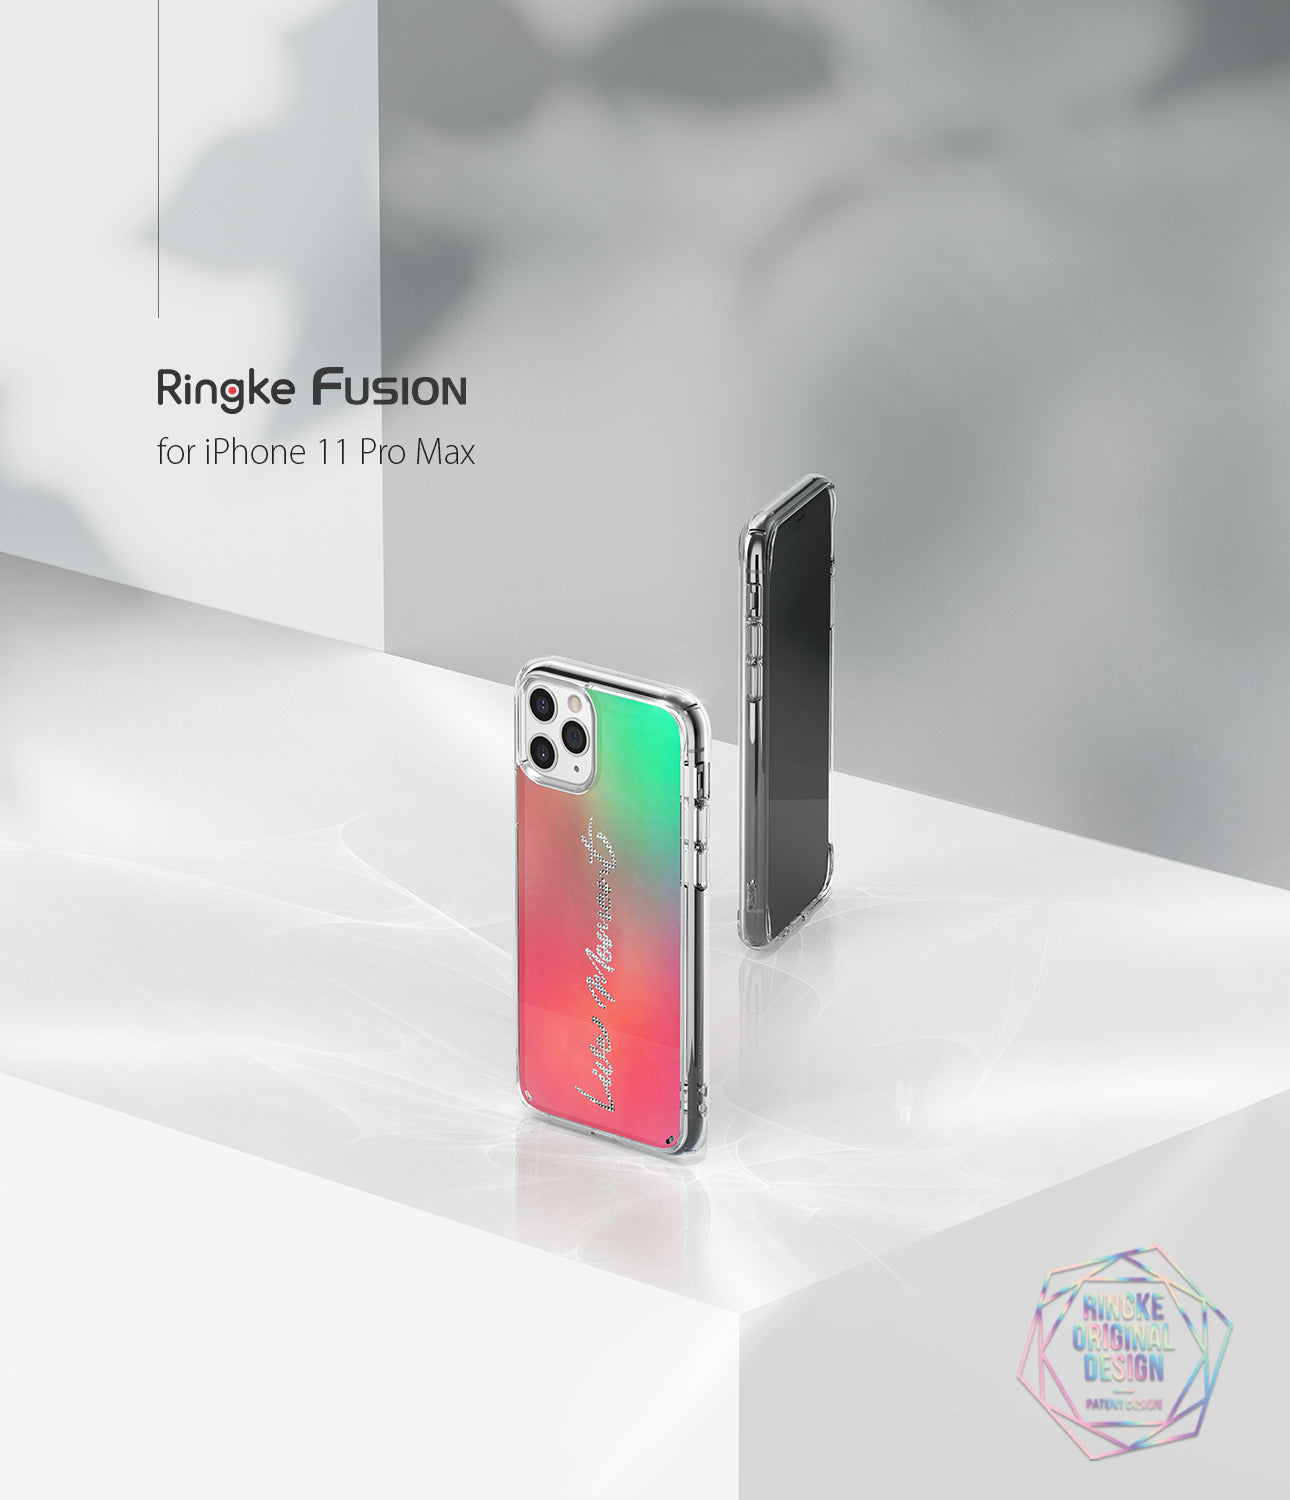 apple iphone 11 pro max case ringke fusion design cover -  live moment